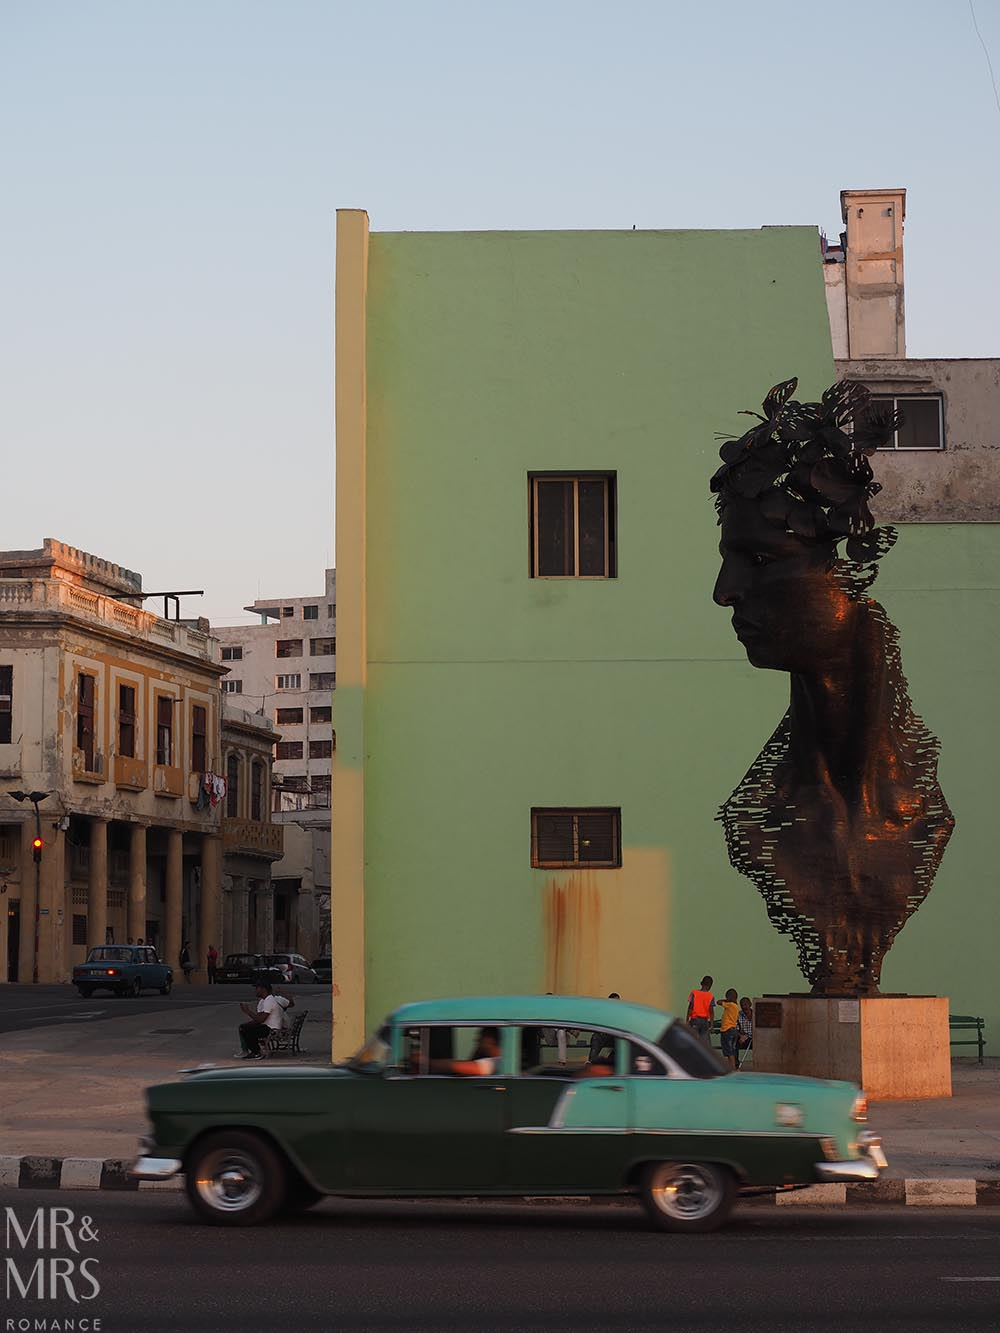 Havana Cuba - how much has Cuba changed? Street art